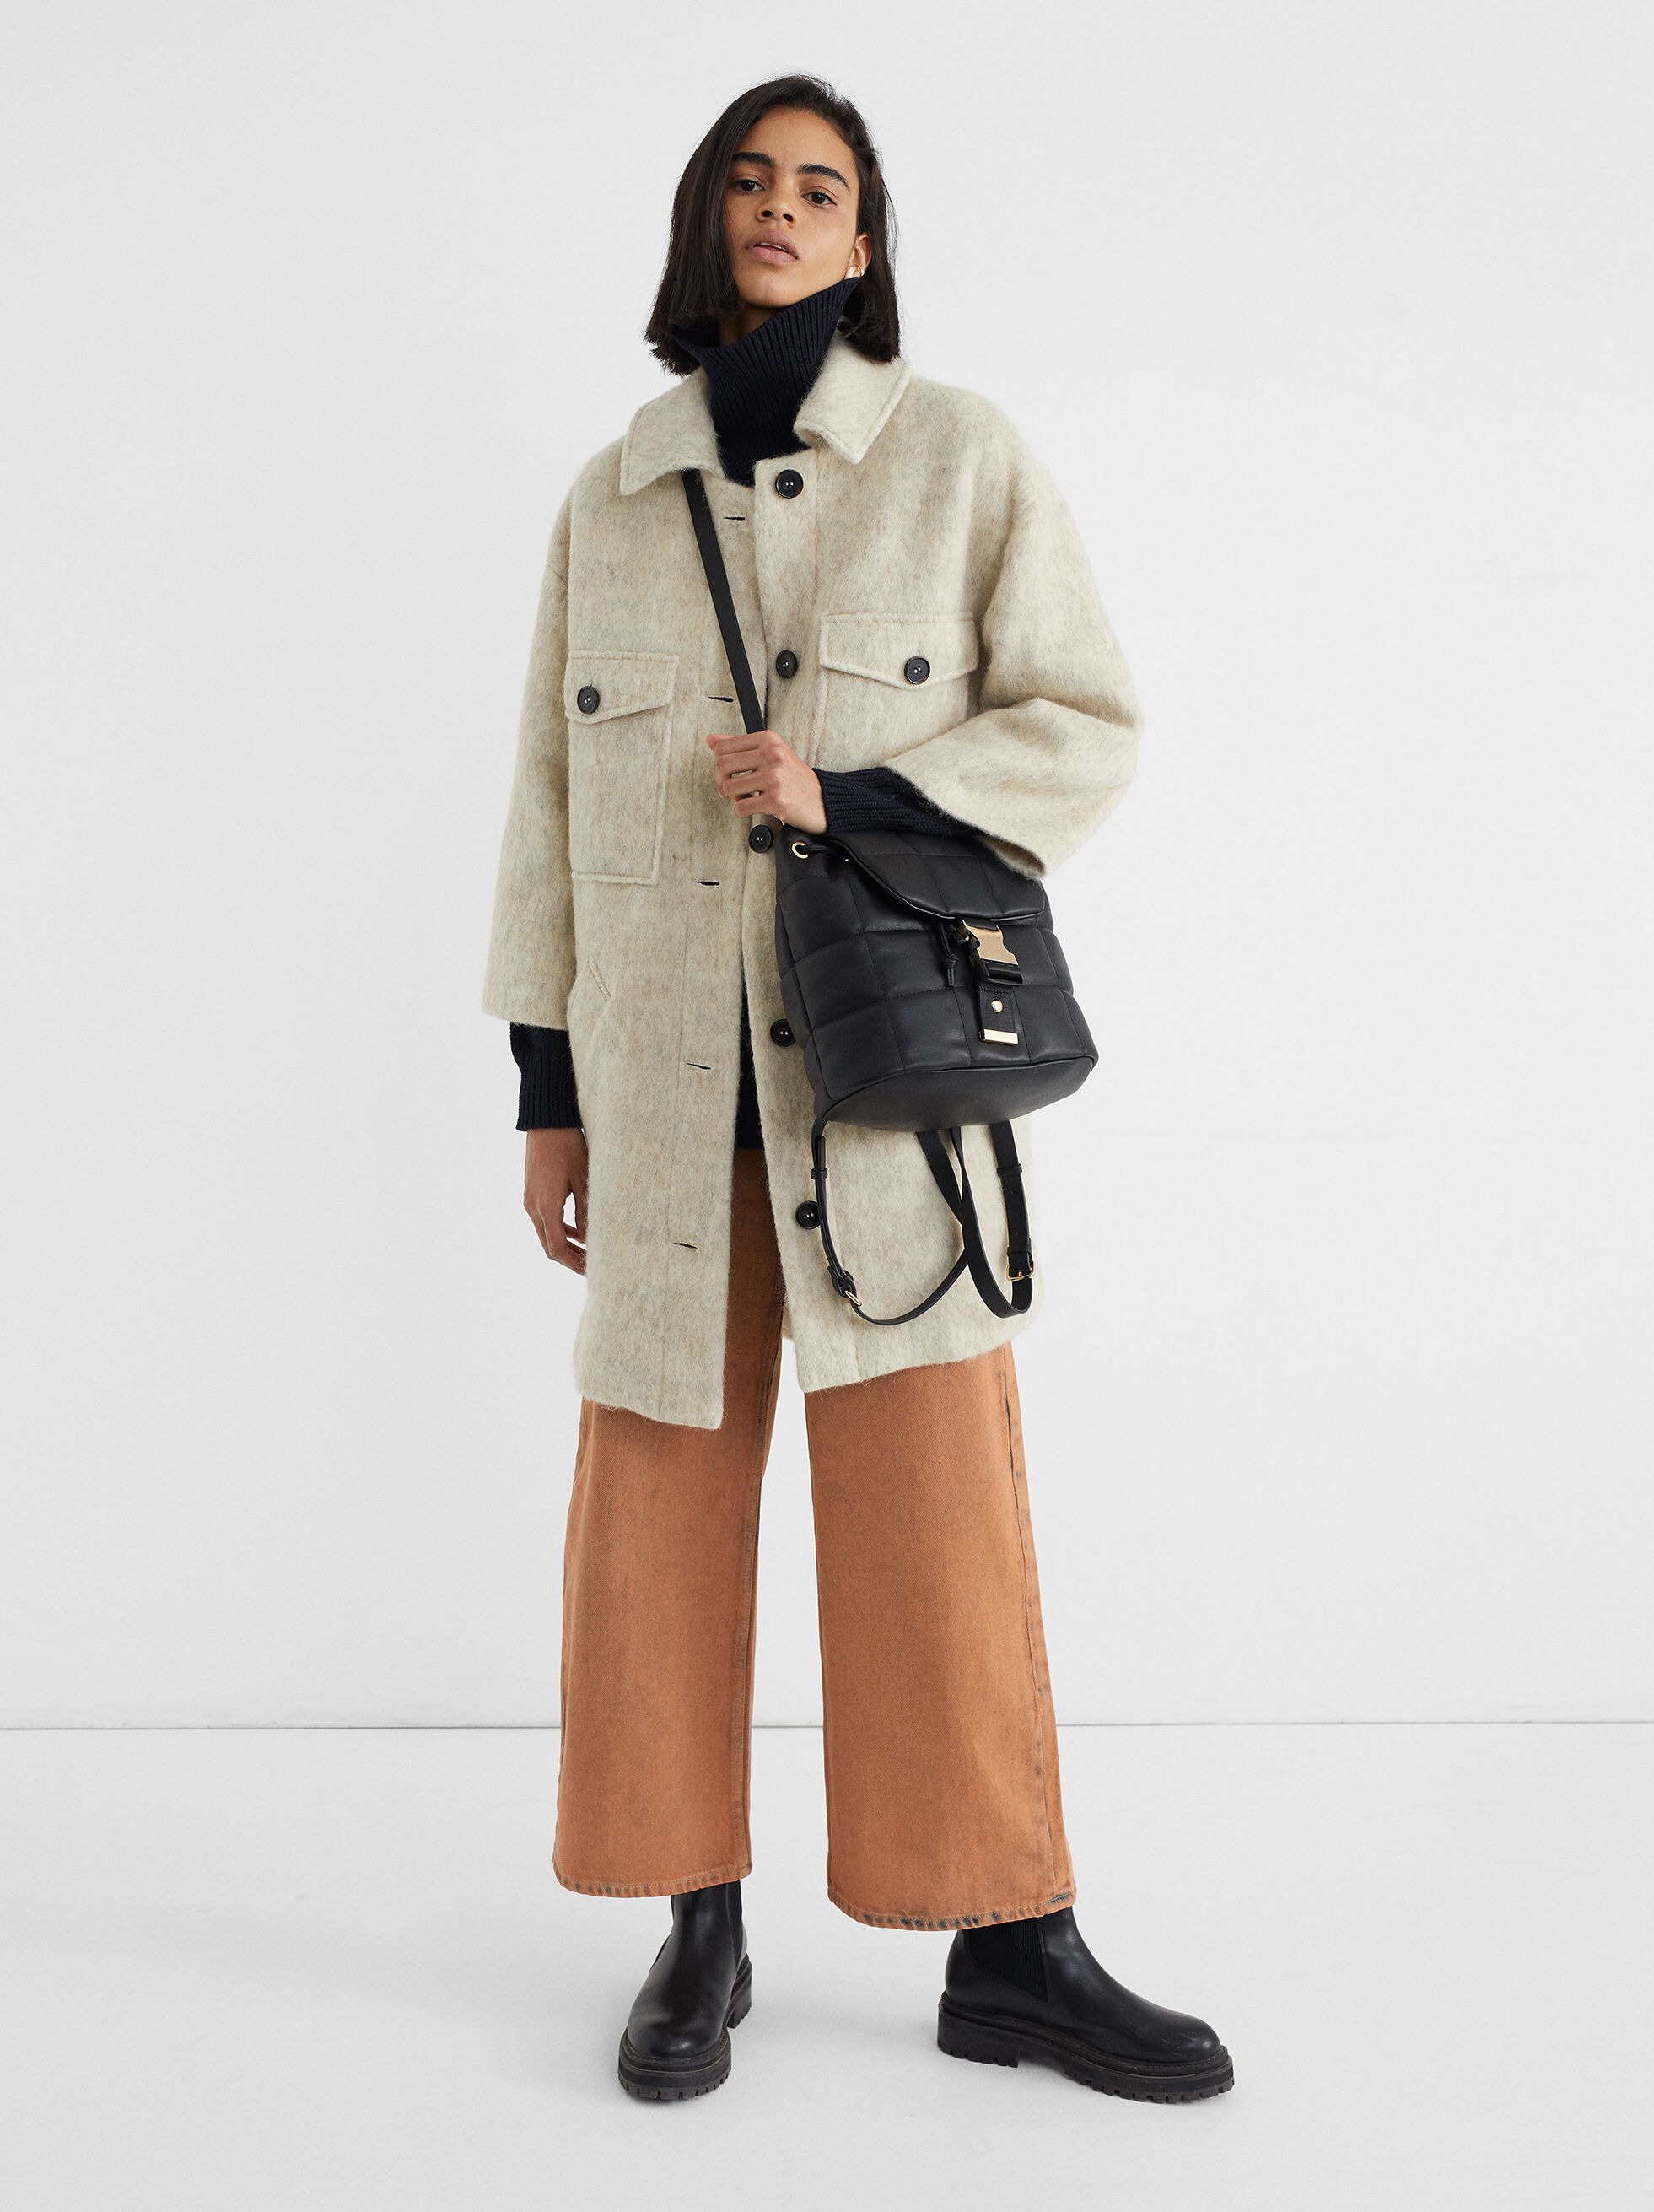 3/4 Length Sleeve Coat With Button-Up Front, , hi-res